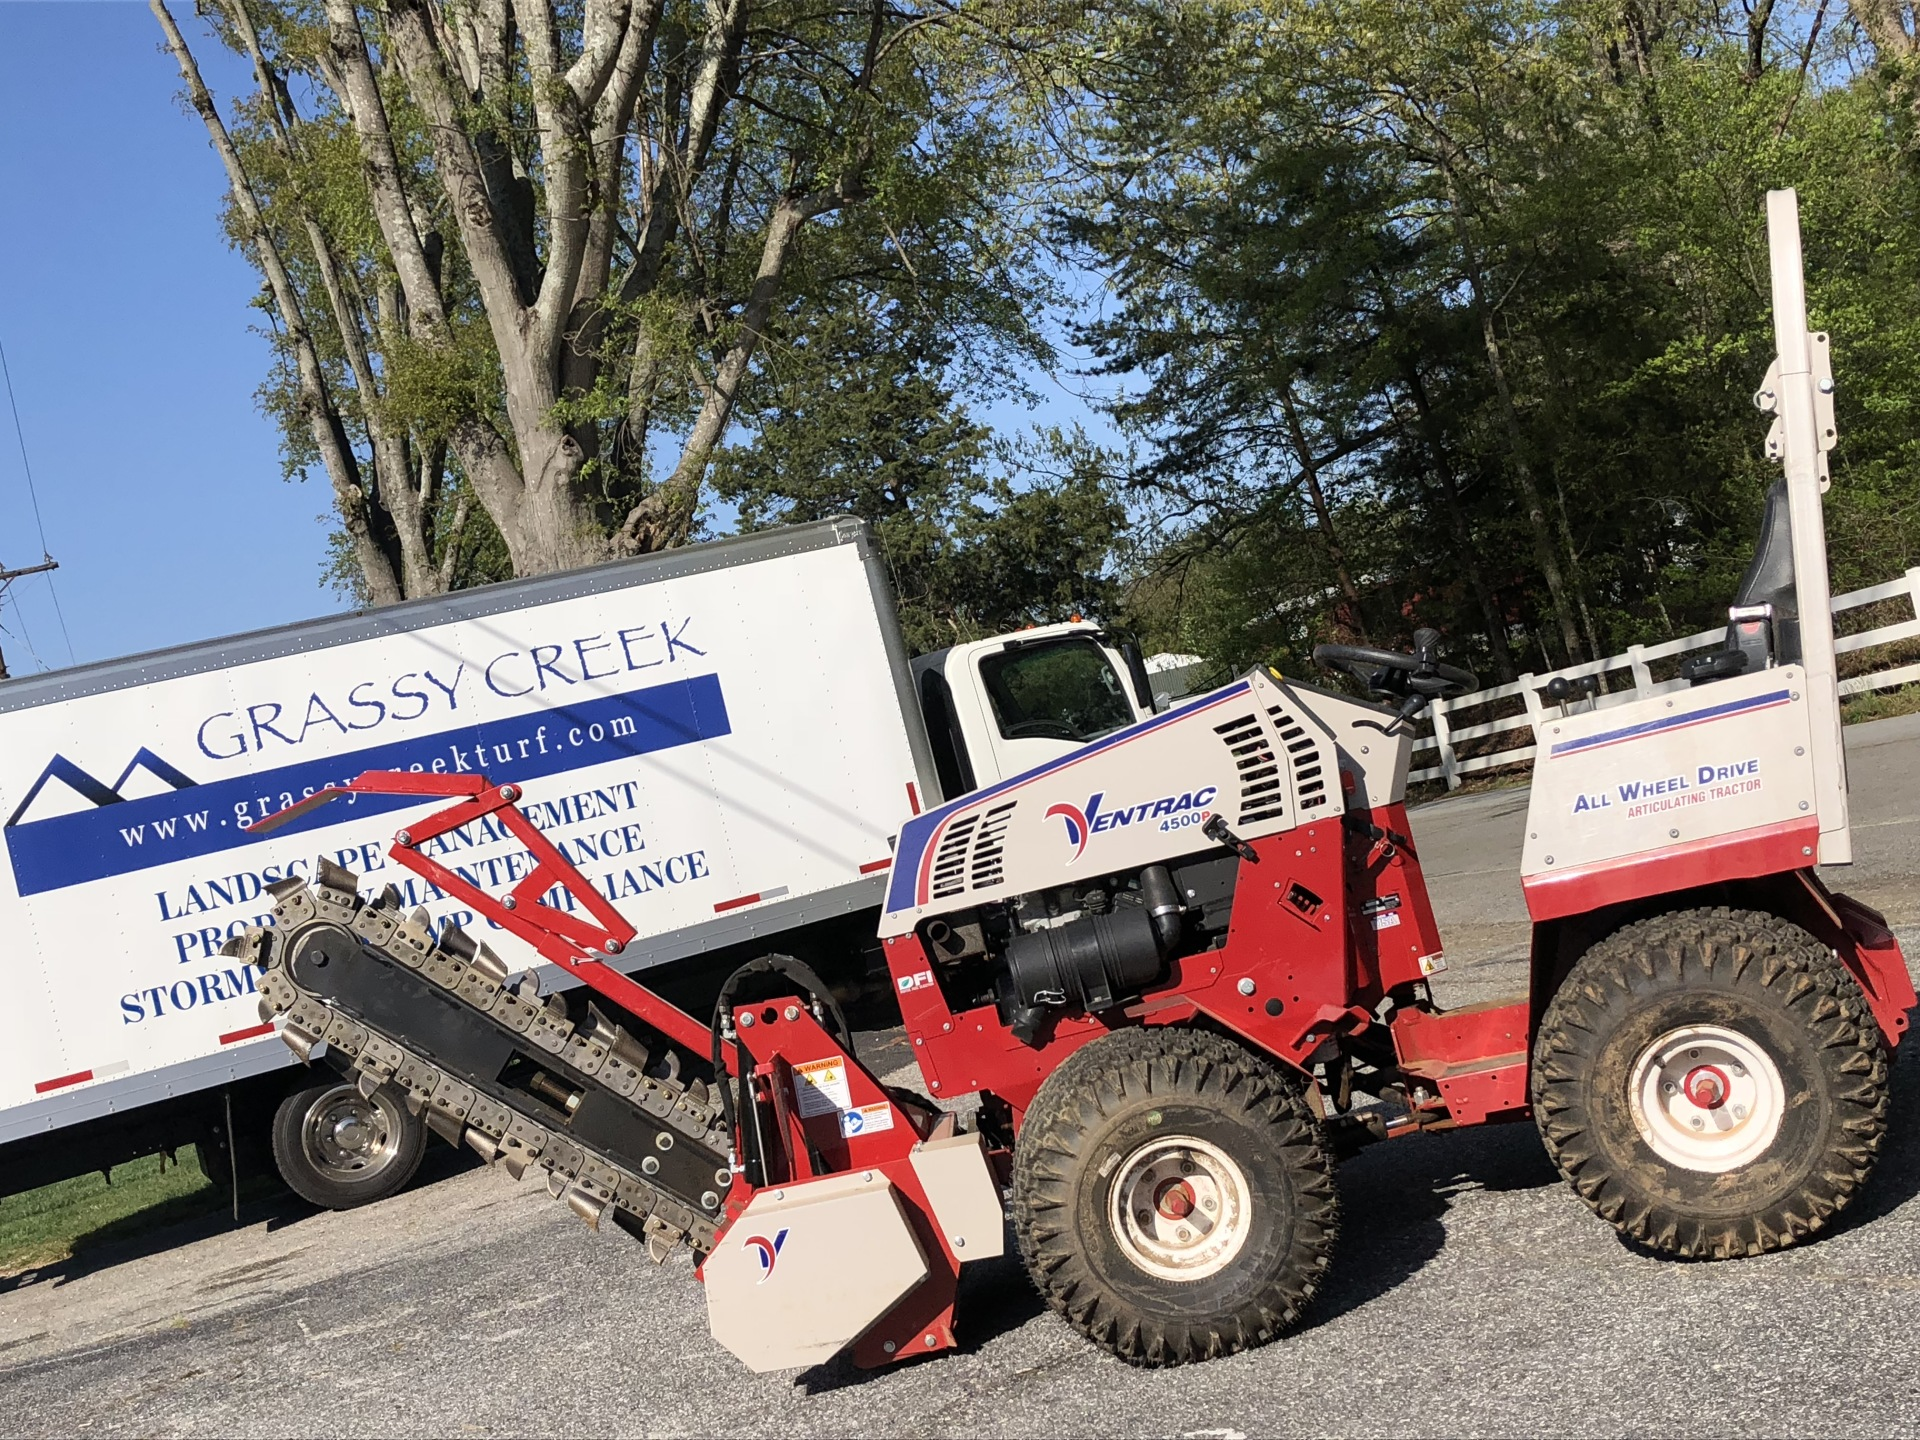 Grassy Creek Takes Delivery of Ventrac Trencher